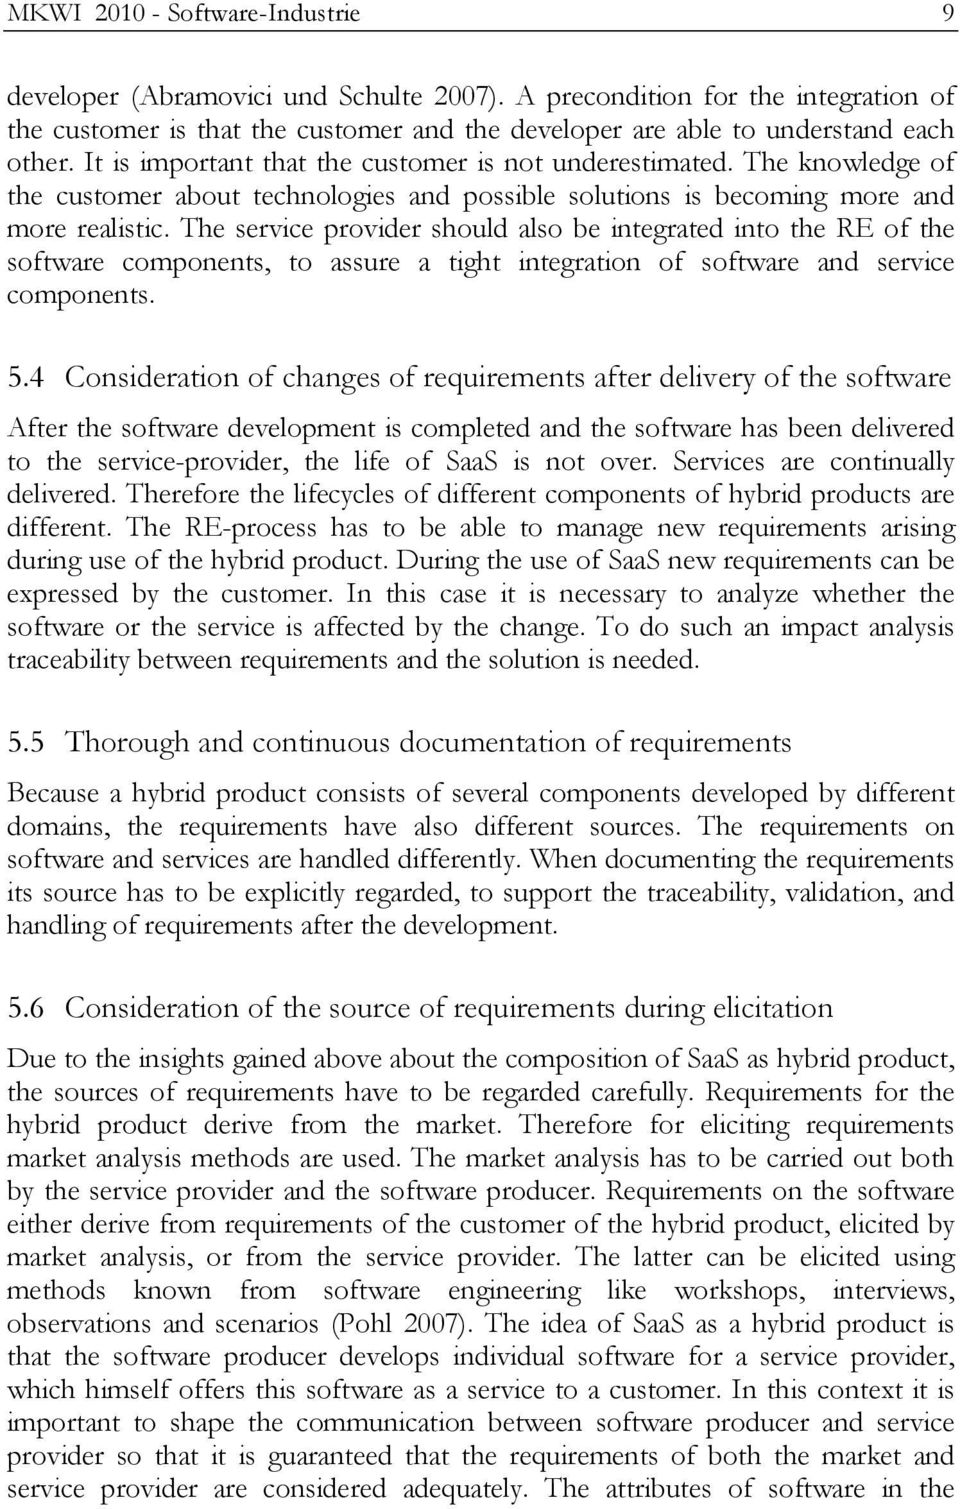 The service provider should also be integrated into the RE of the software components, to assure a tight integration of software and service components. 5.